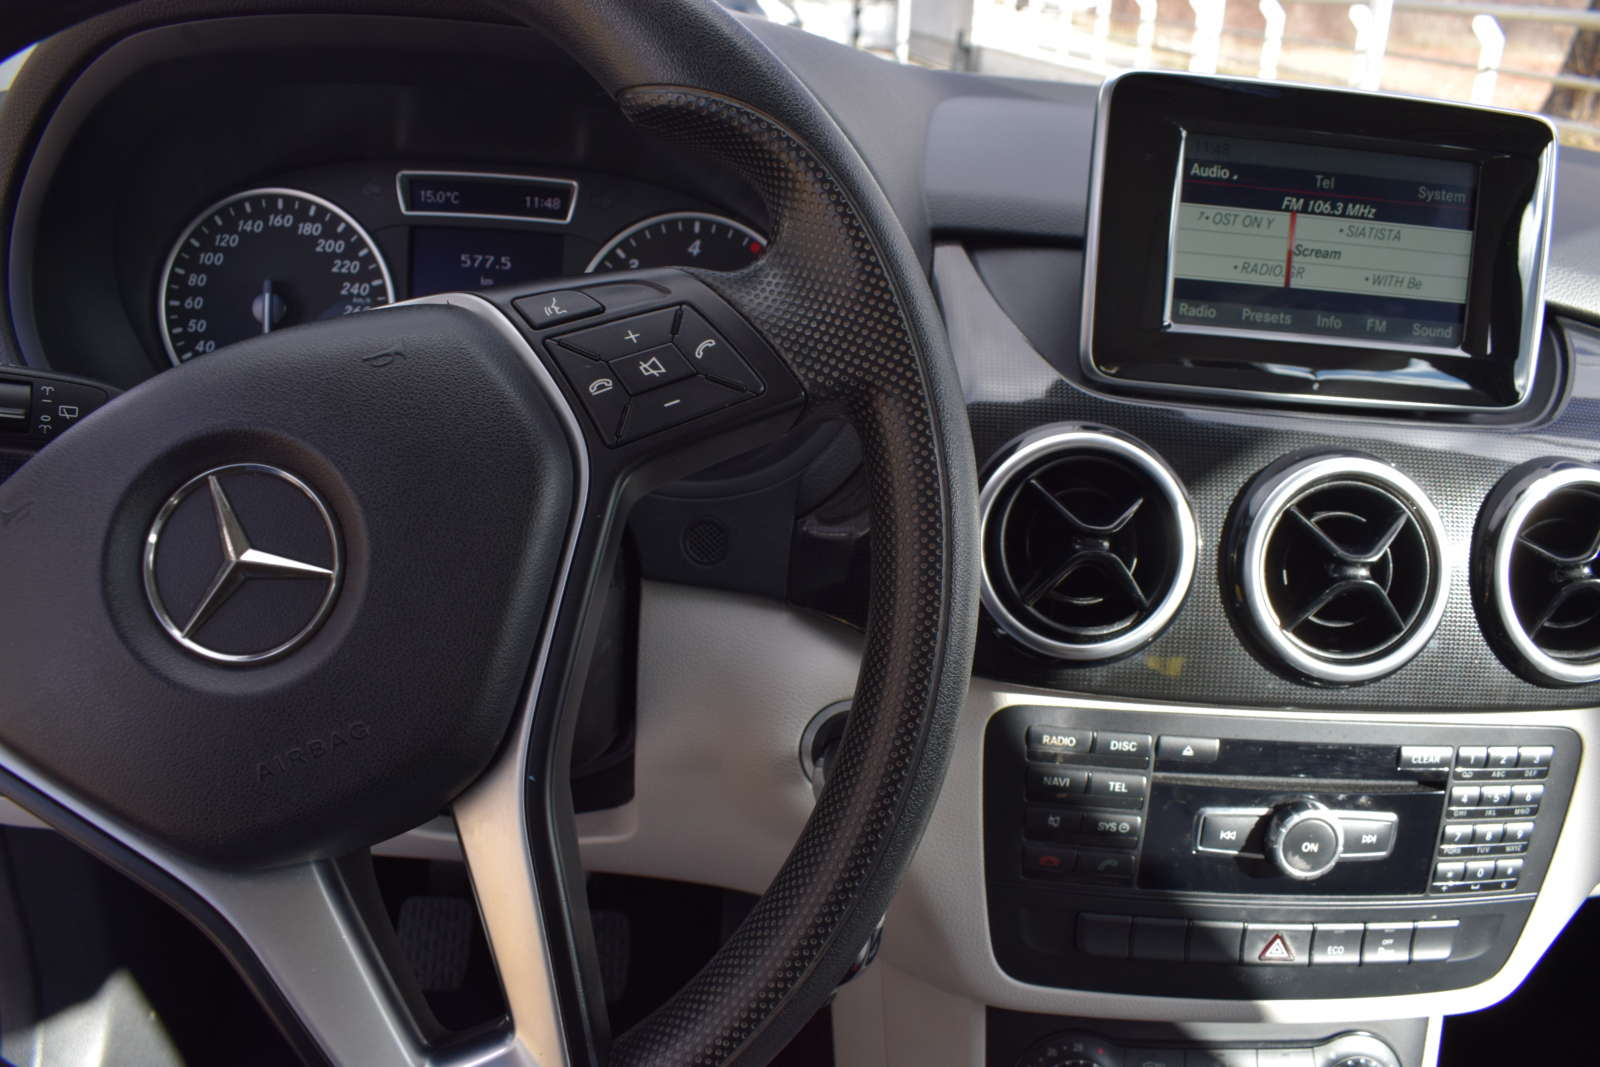 Mercedes-Benz B200 CDI full